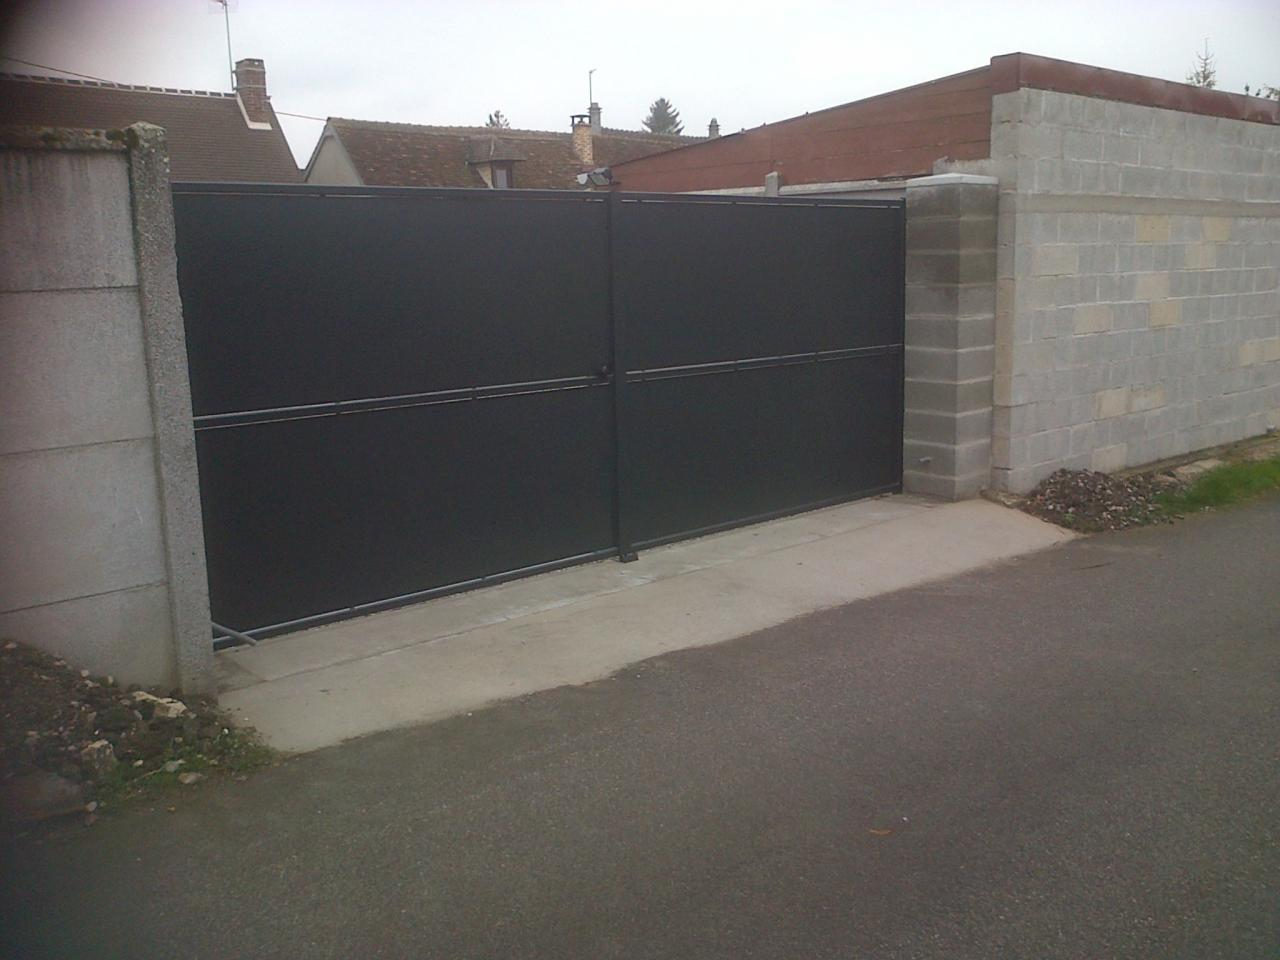 portail et portillon sur mesure oise et ile de france. Black Bedroom Furniture Sets. Home Design Ideas